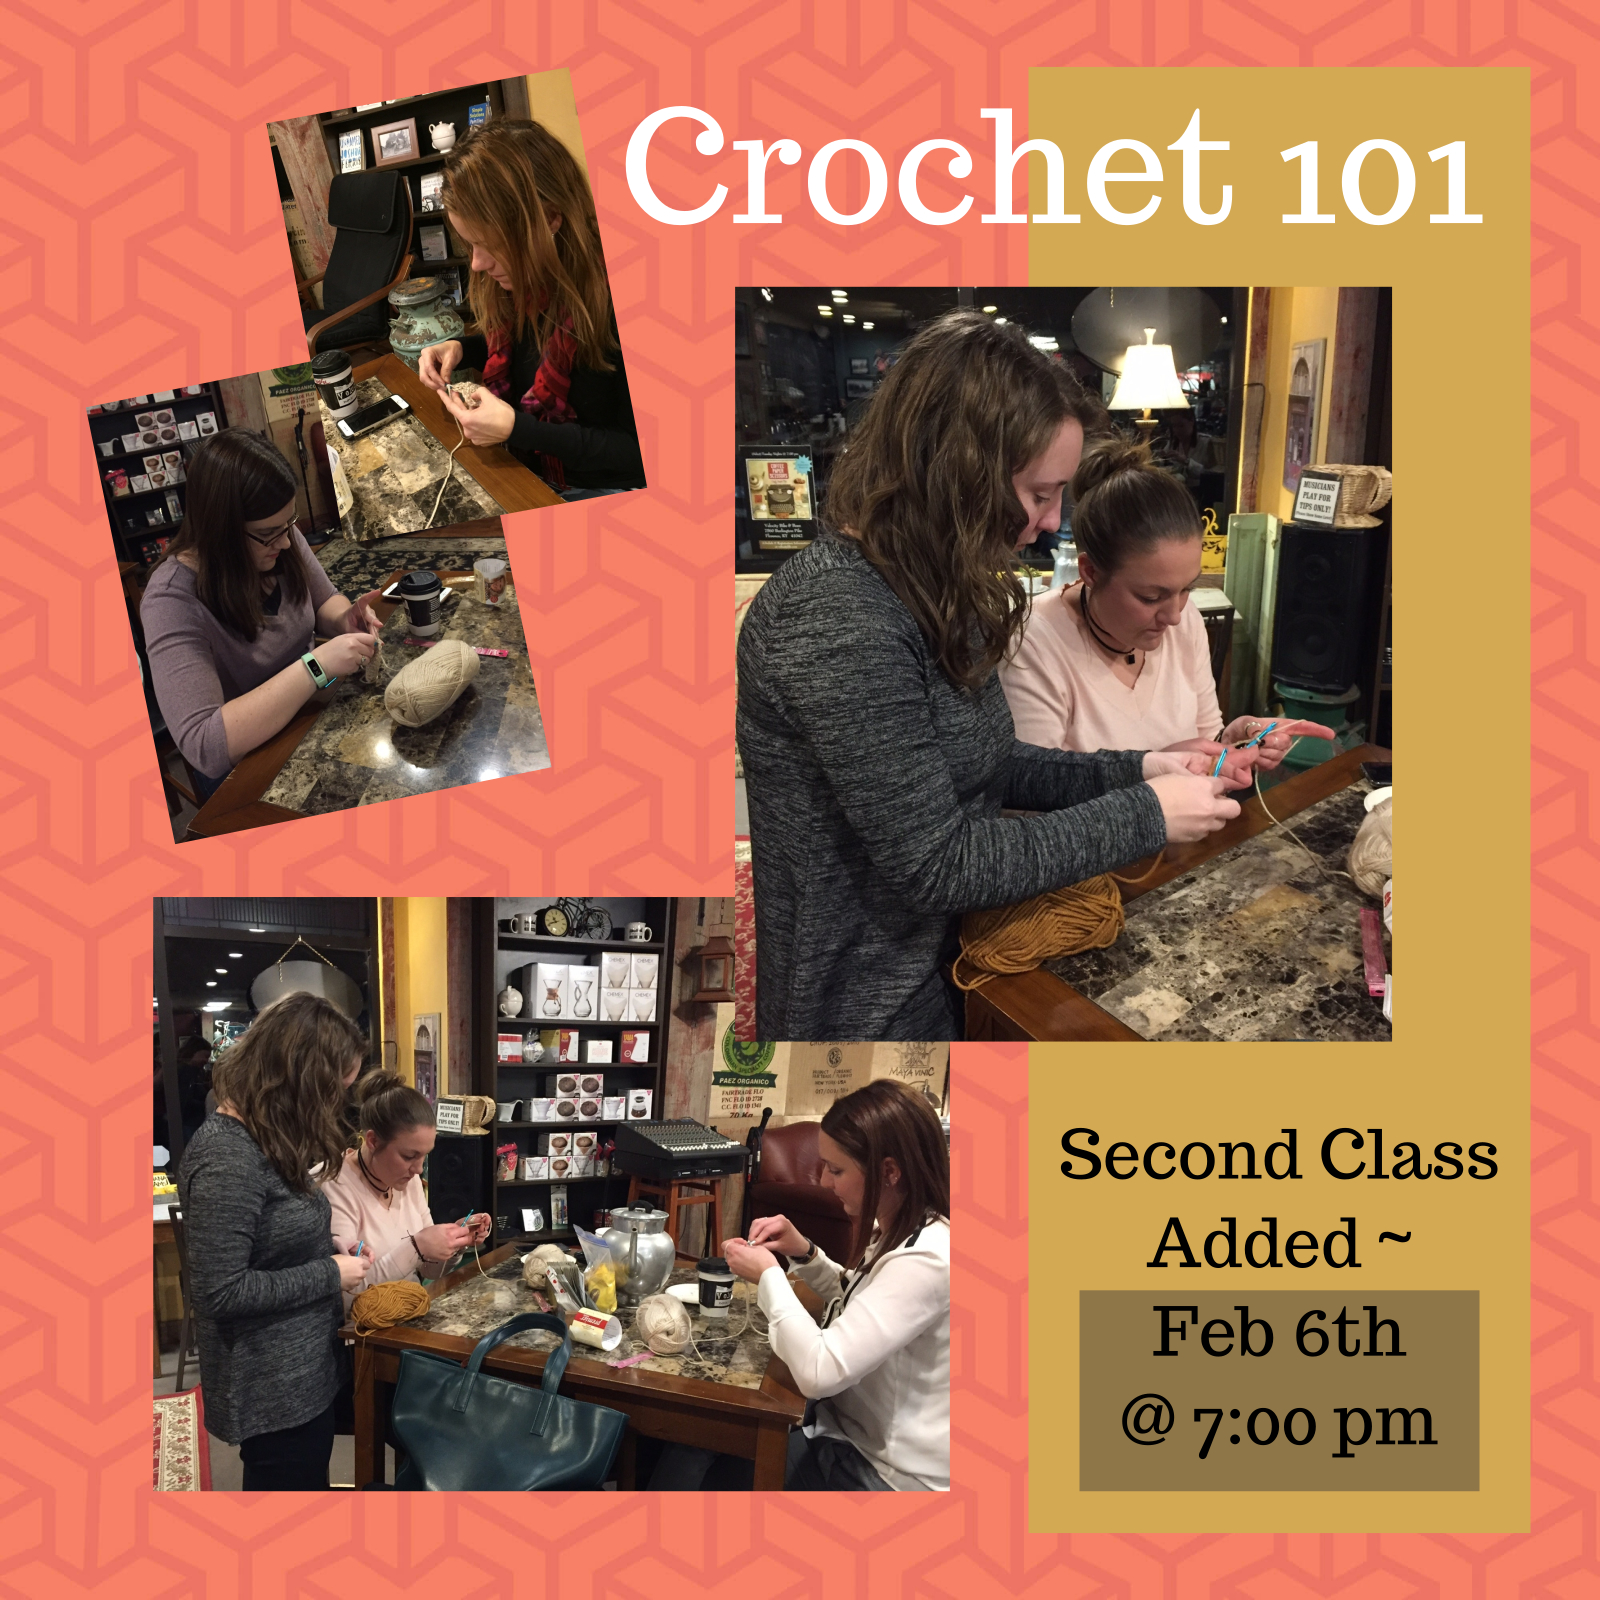 Crochet 101 - Feb 6th @ 7:00 p.m.